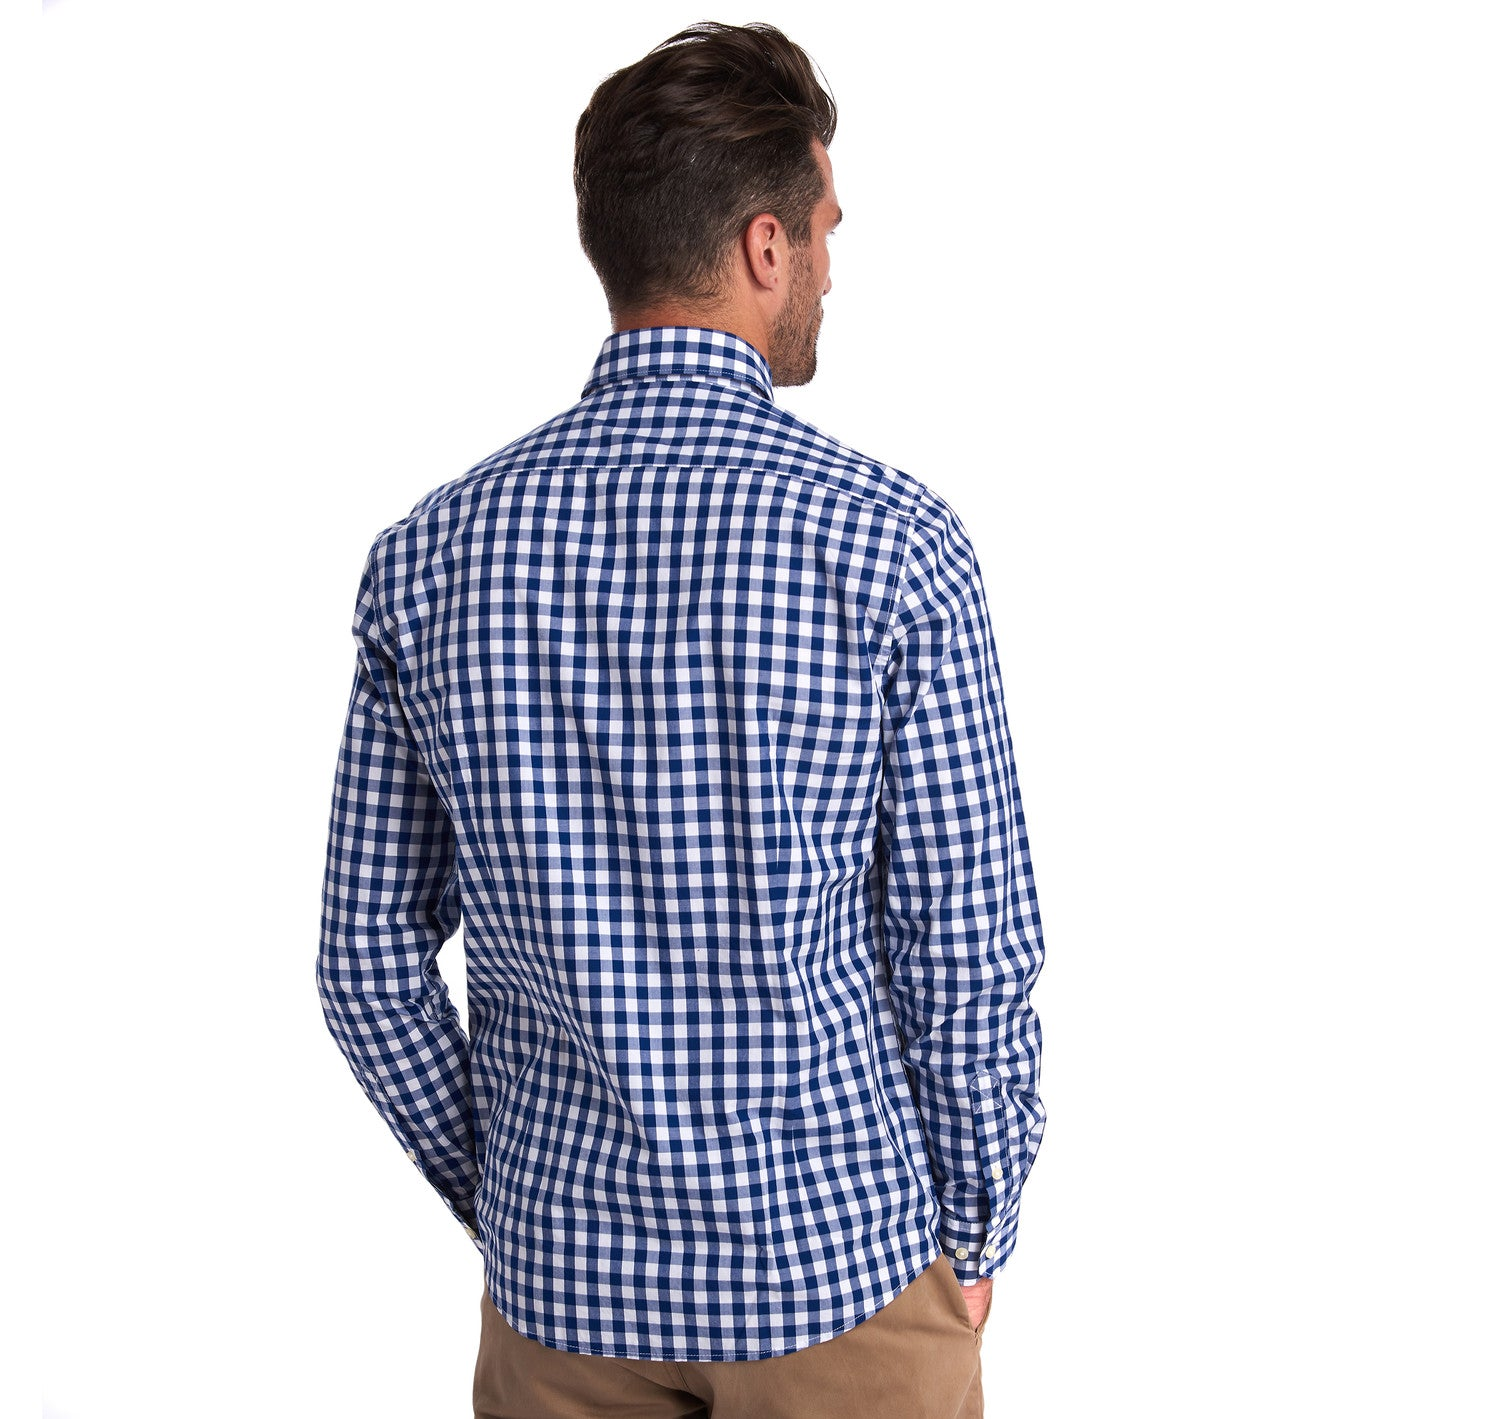 Barbour Gingham 18 Tailored Fit Shirt for Men in Inky Blue